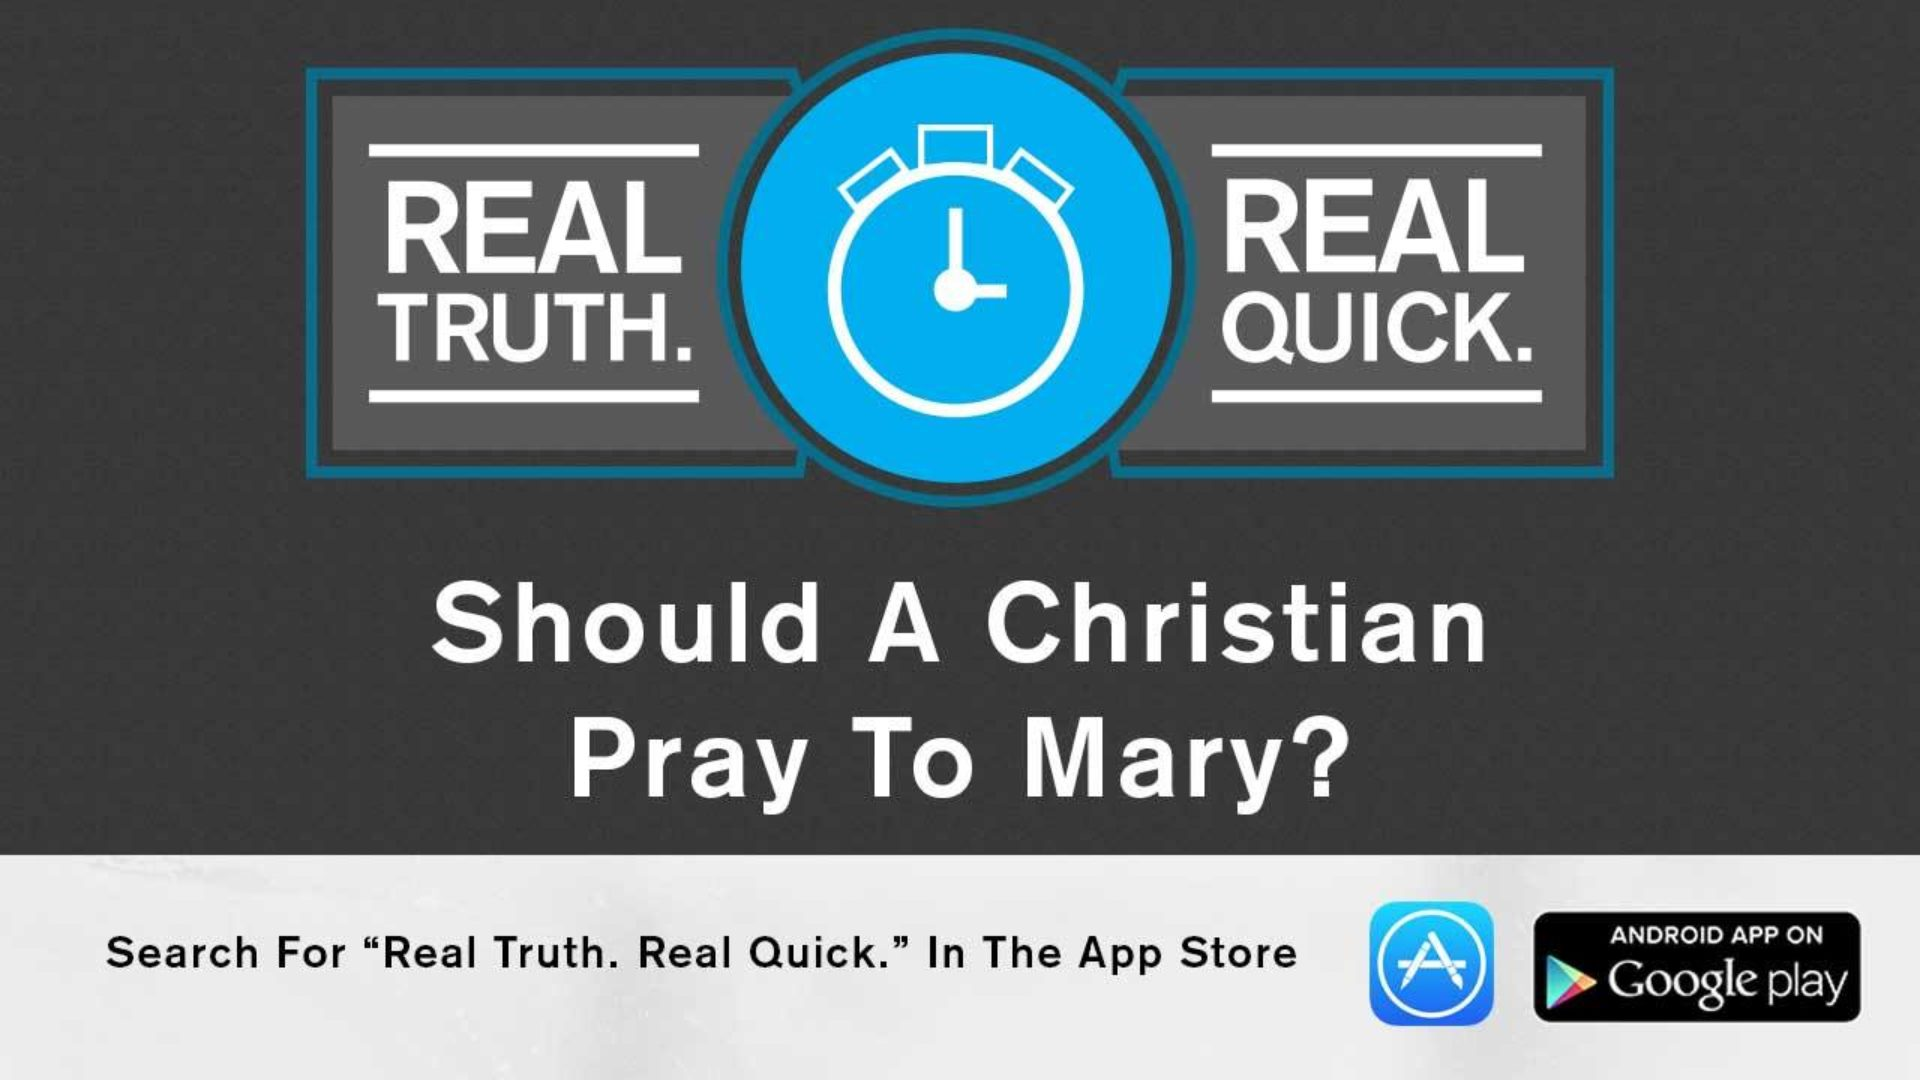 Should a Christian Pray to Mary? Hero Image